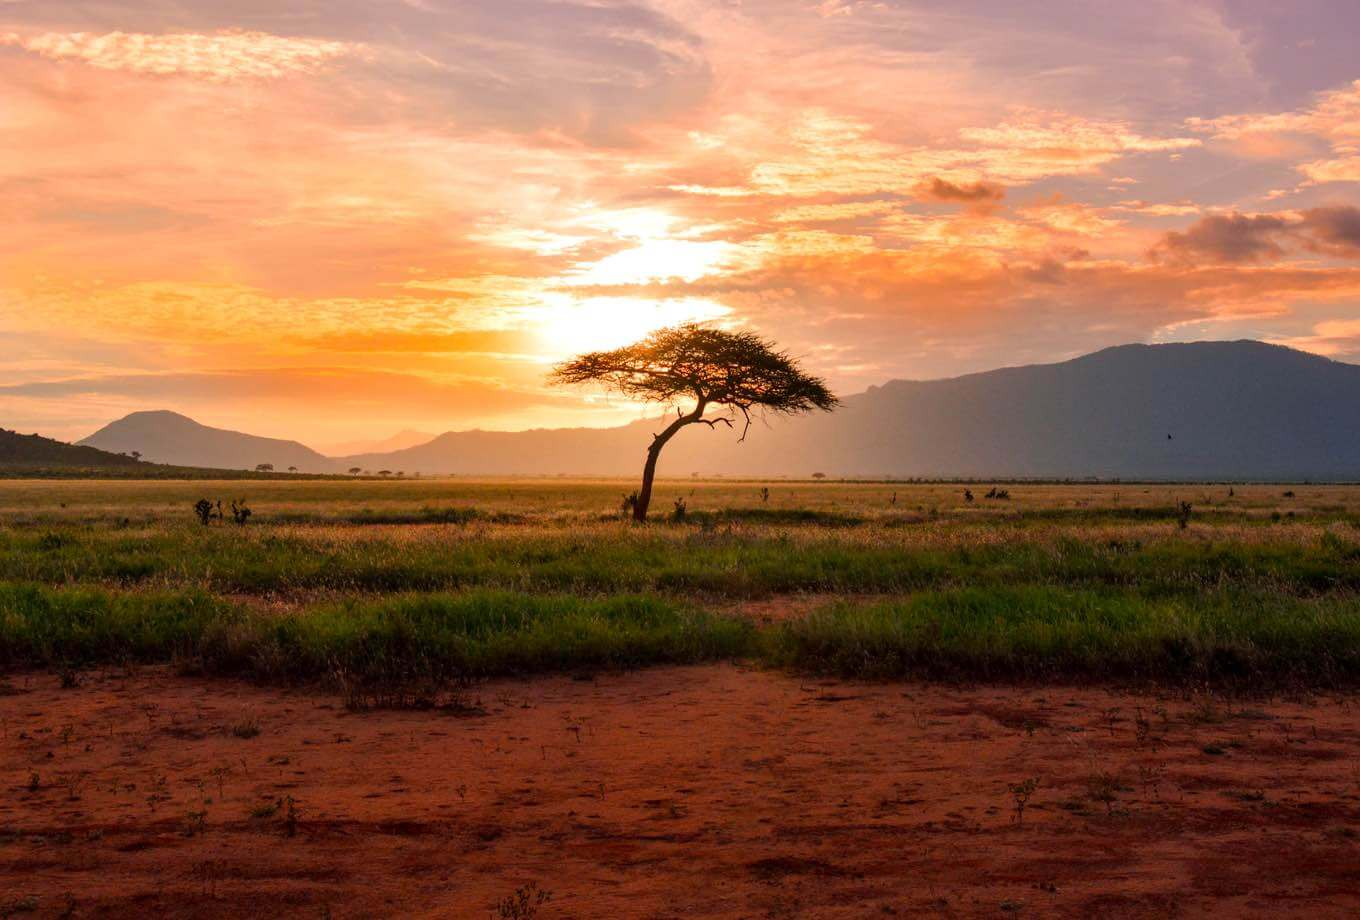 Sunset hitting an African tree in the middle of a deserted field